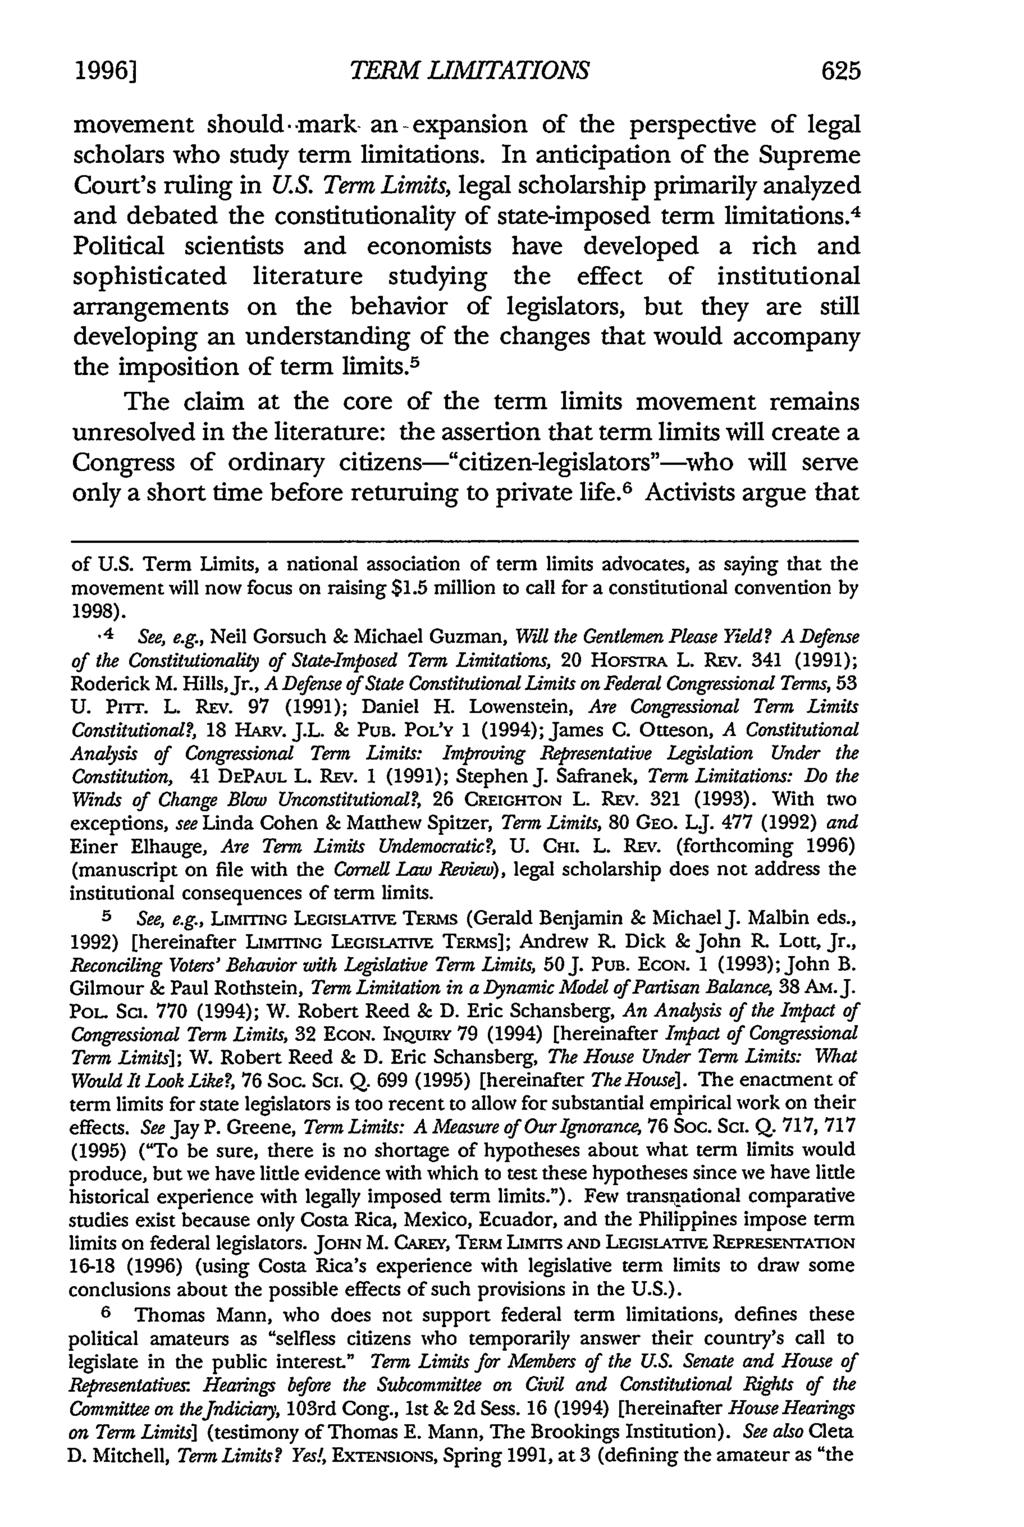 1996] TERM LIMITATIONS movement should..mark- an-expansion of the perspective of legal scholars who study term limitations. In anticipation of the Supreme Court's ruling in U.S. Term Limits, legal scholarship primarily analyzed and debated the constitutionality of state-imposed term limitations.